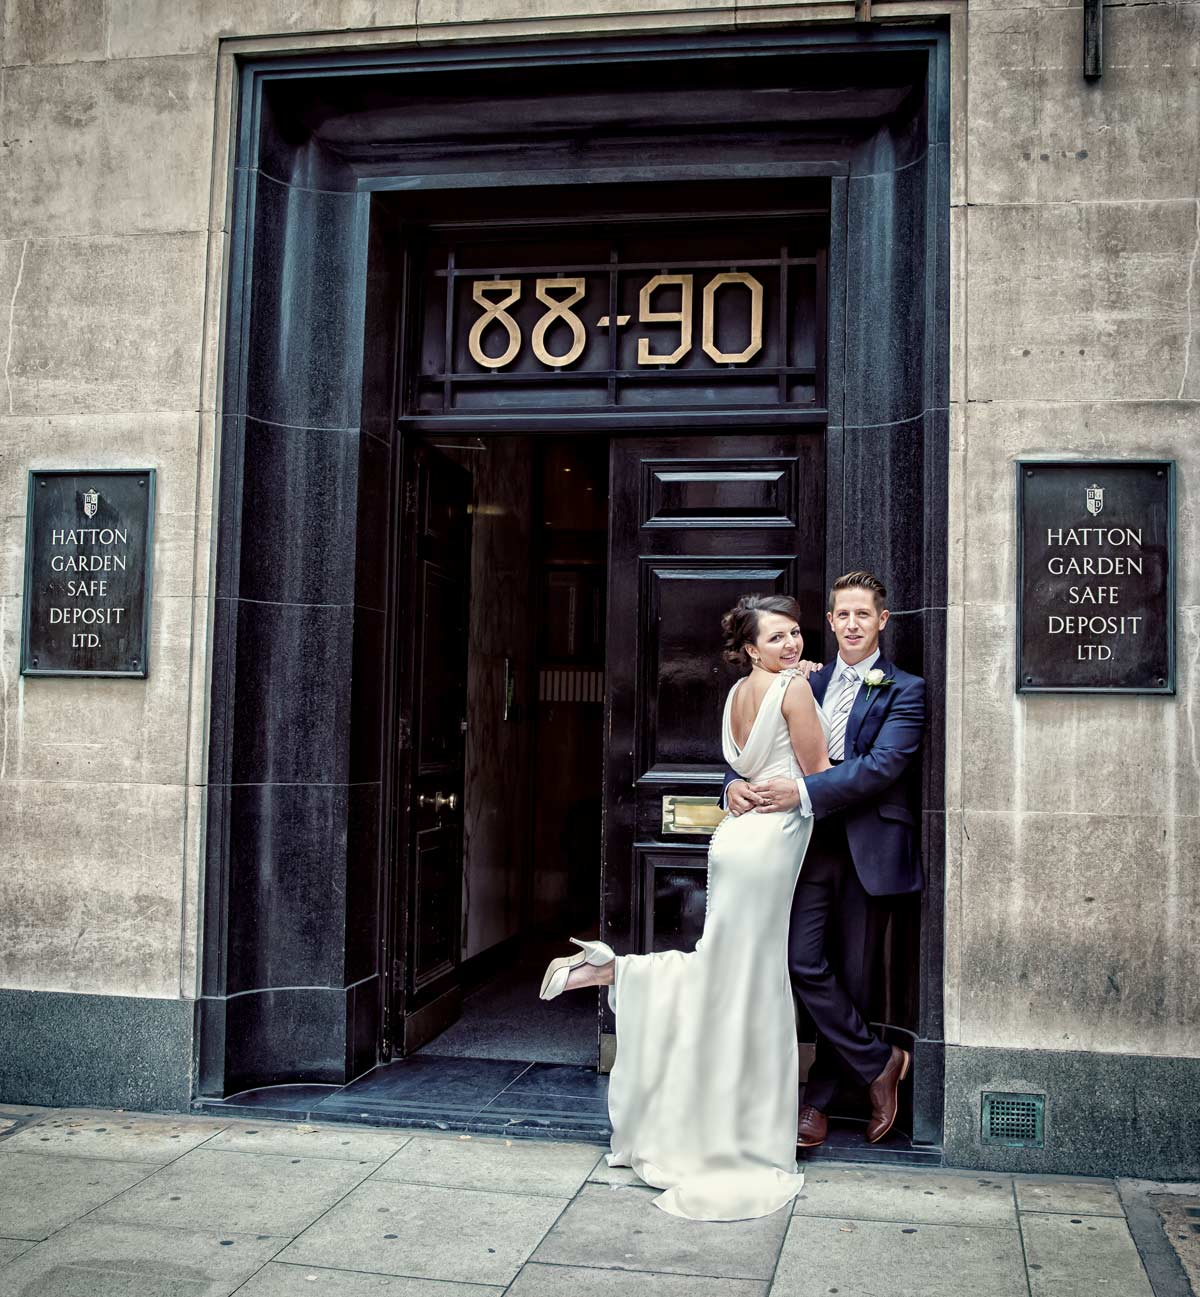 Hatton Garden safety deposit wedding job 1